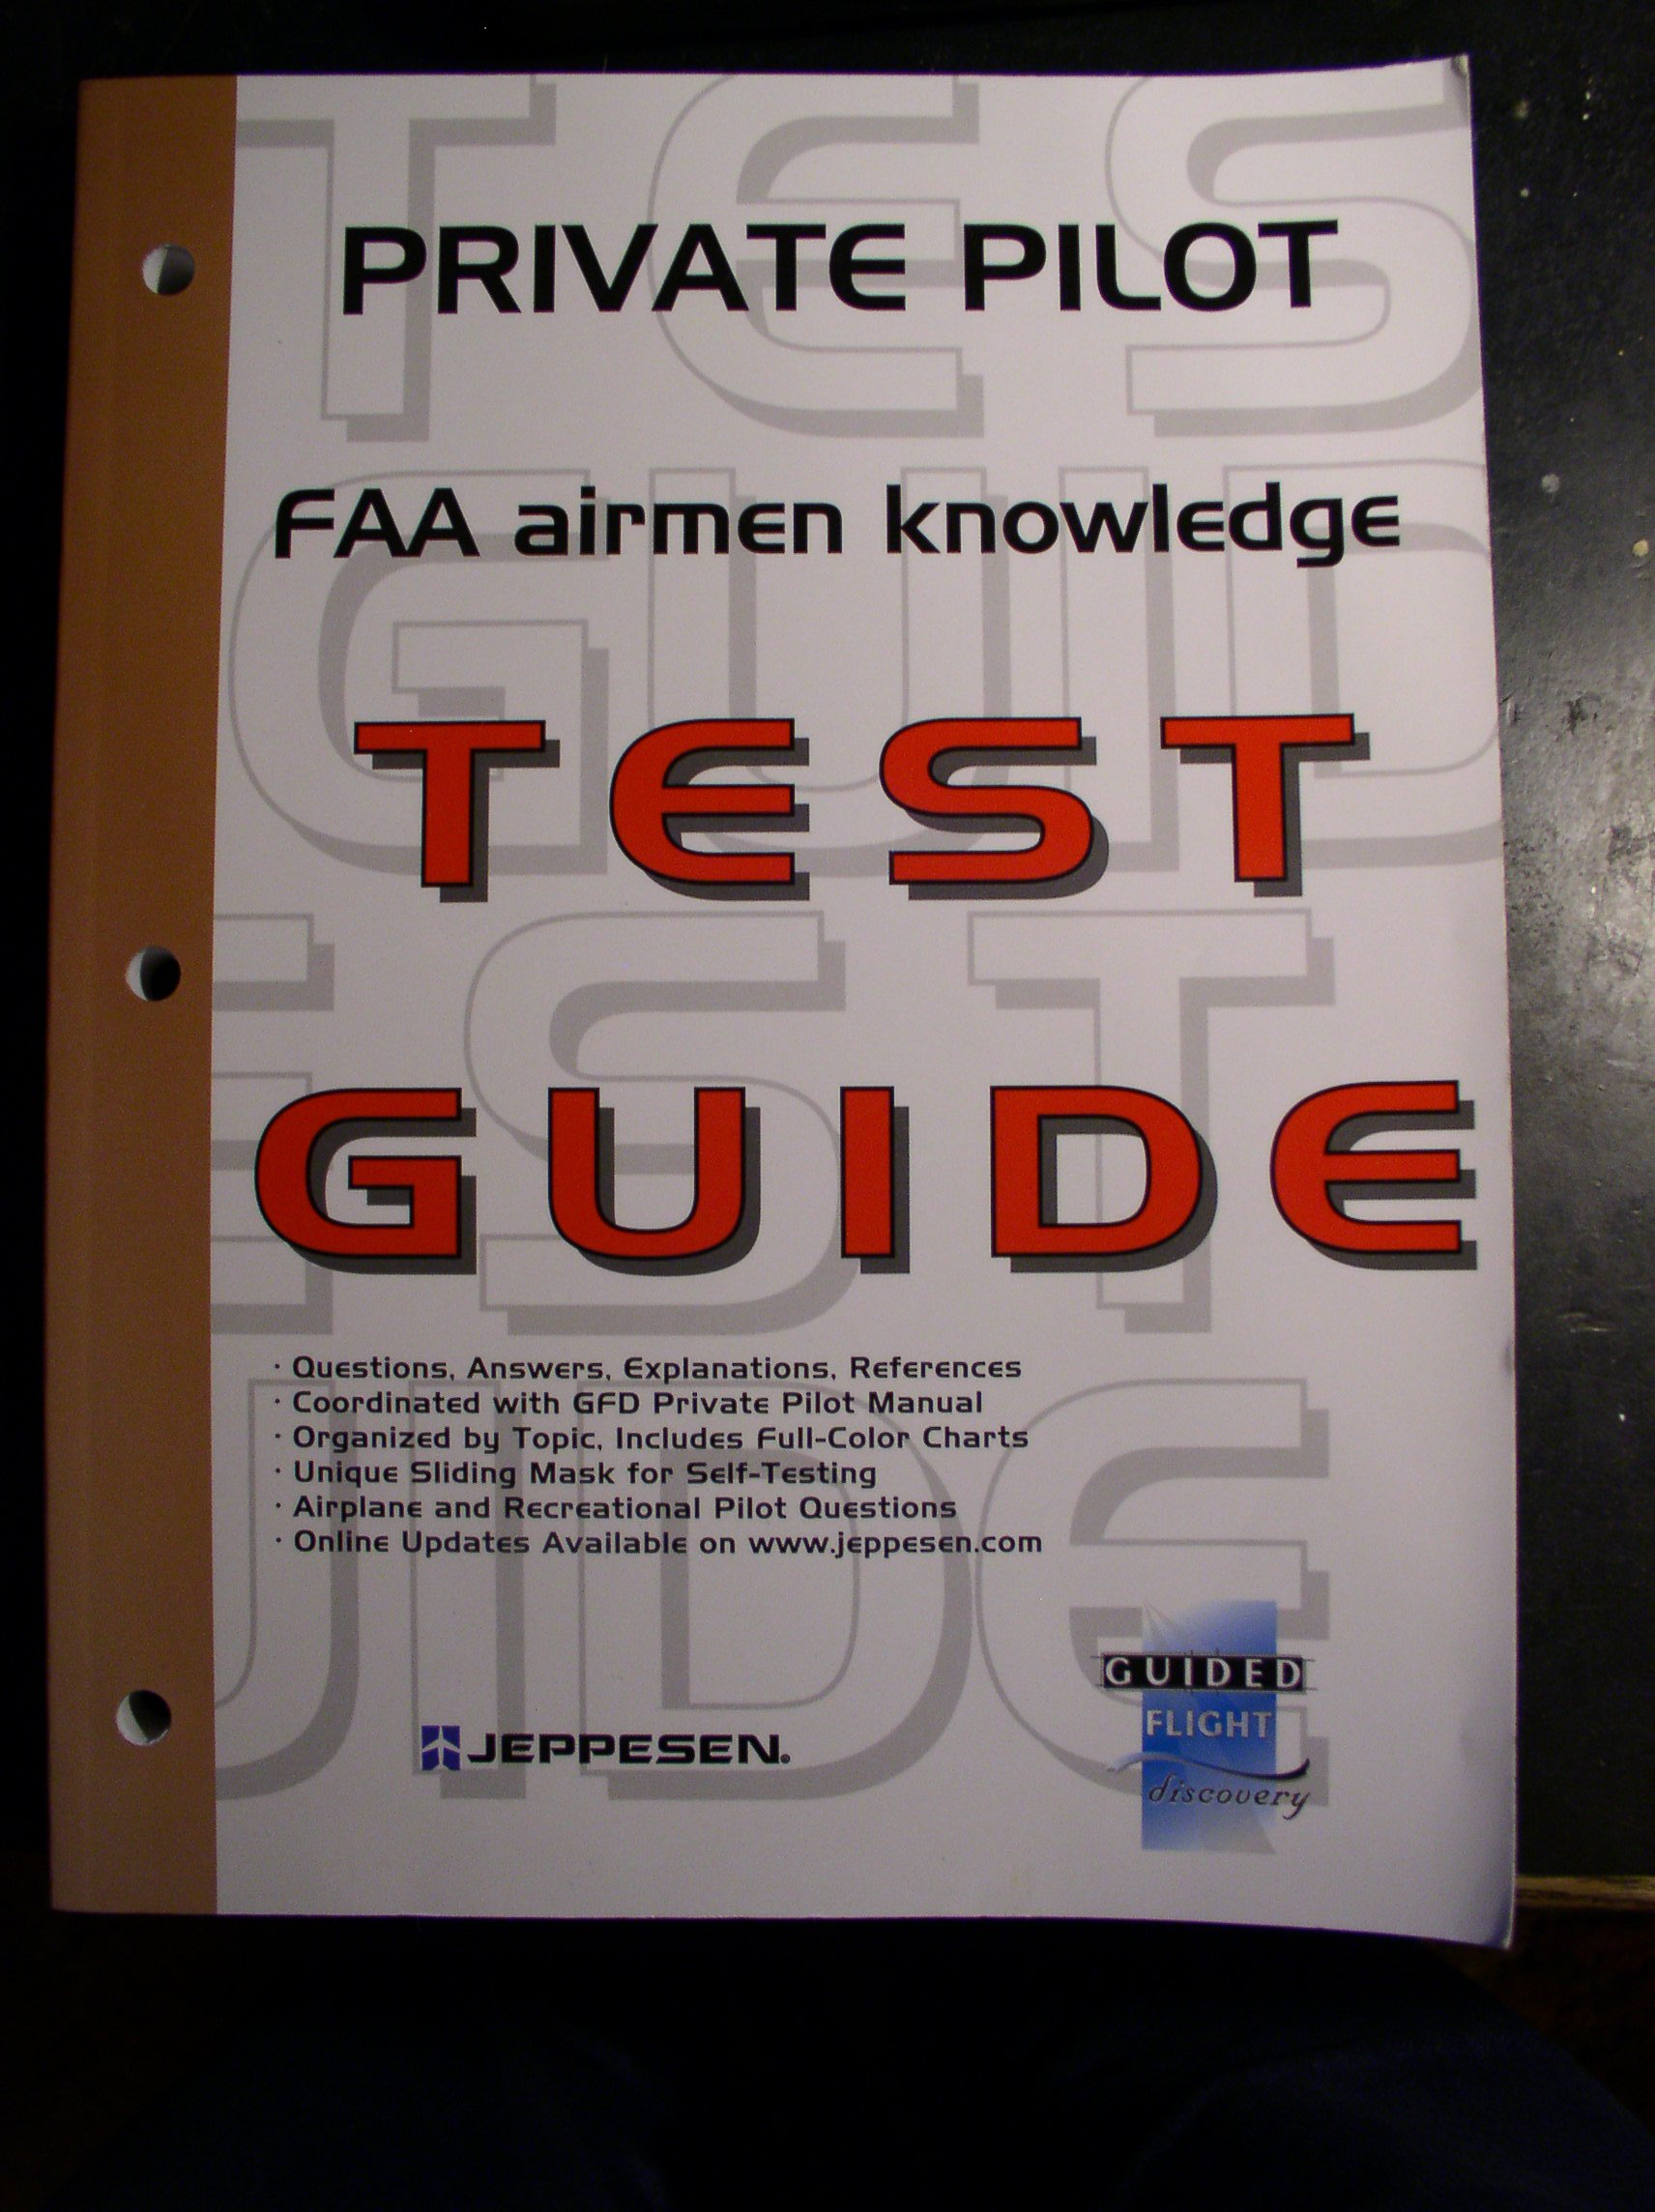 Private pilot faa airmen knowledge test guide jeppesen sanderson private pilot faa airmen knowledge test guide jeppesen sanderson 9780884873785 amazon books fandeluxe Images